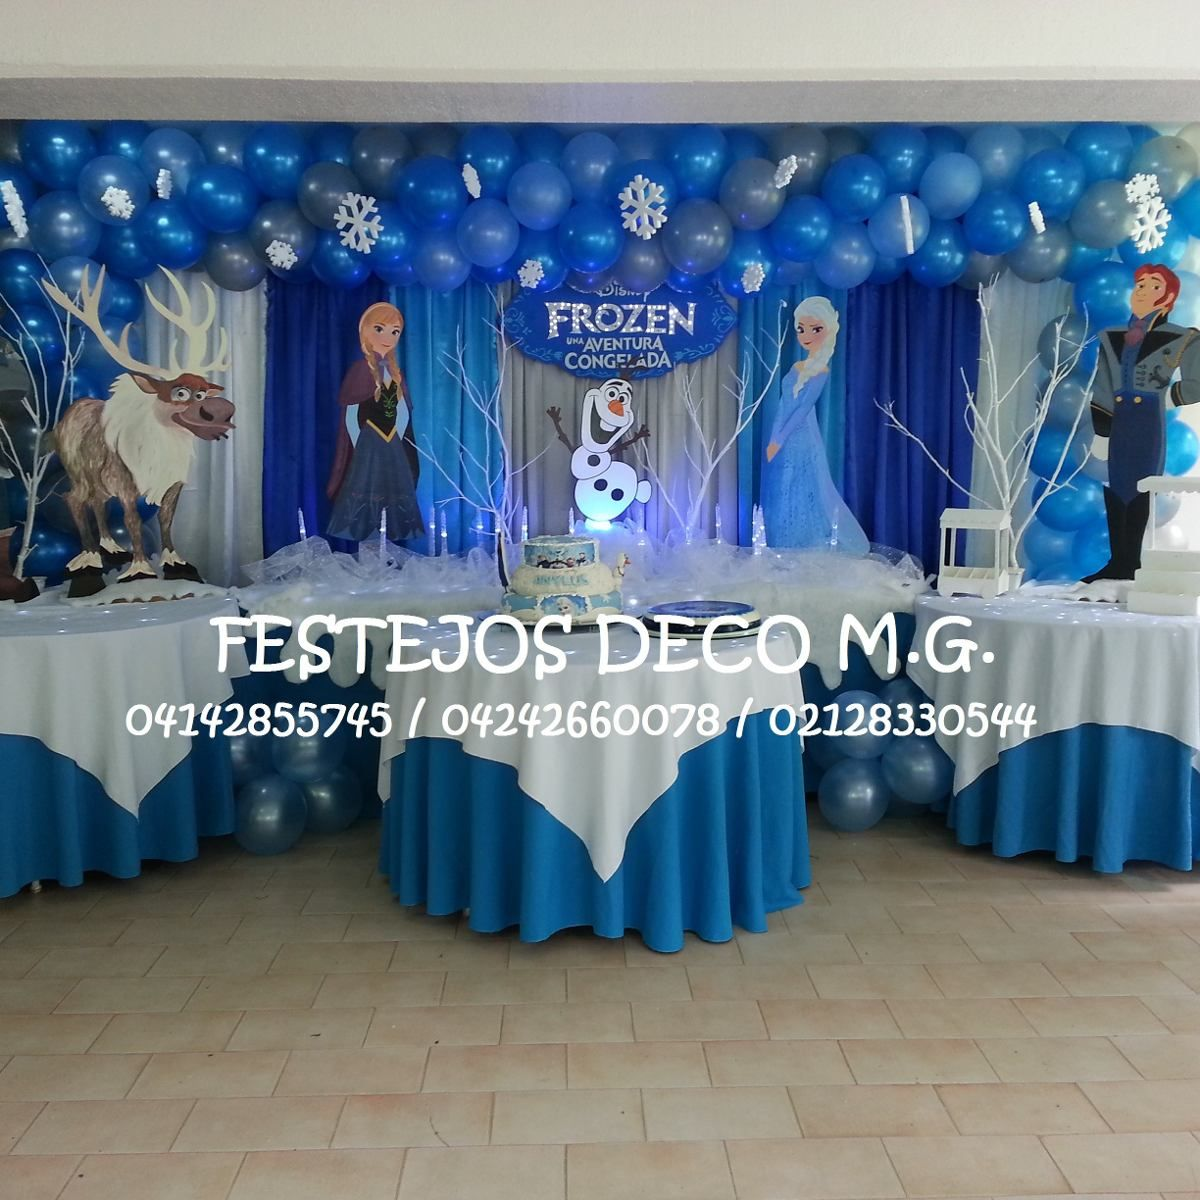 Decoracion frozen buscar con google frozen pinterest for Buscar decoraciones